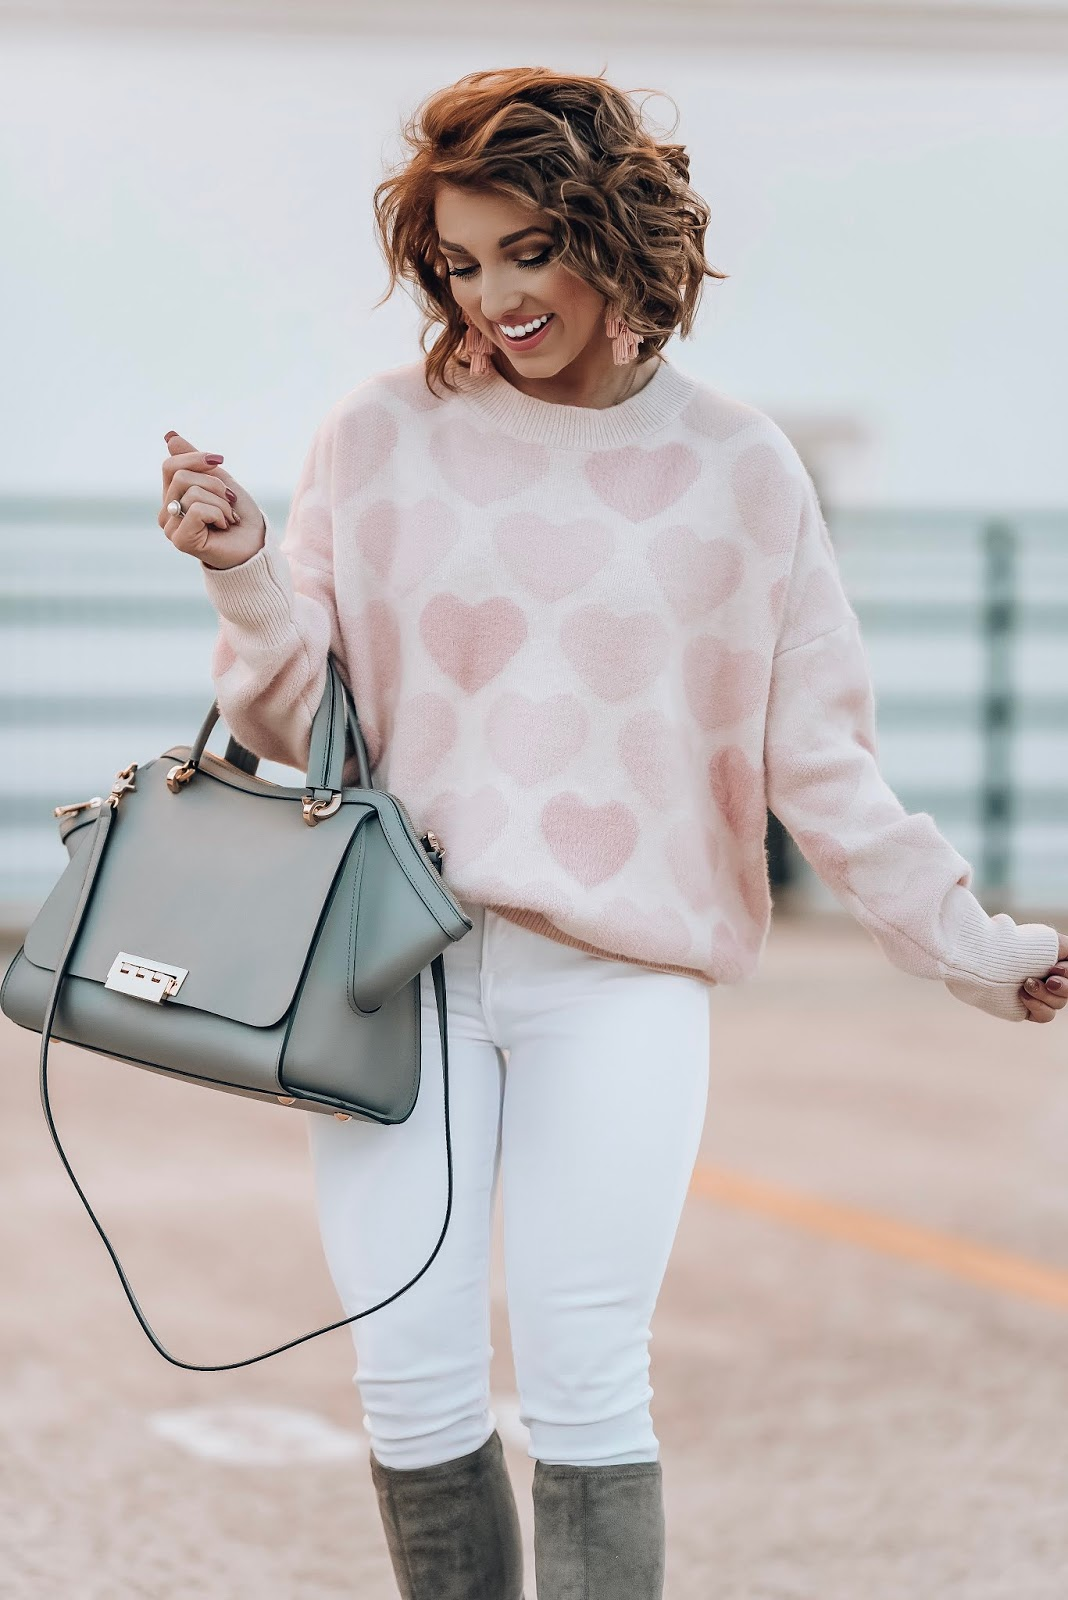 Pink Hearts Sweater for Valentine's Day - Something Delightful Blog